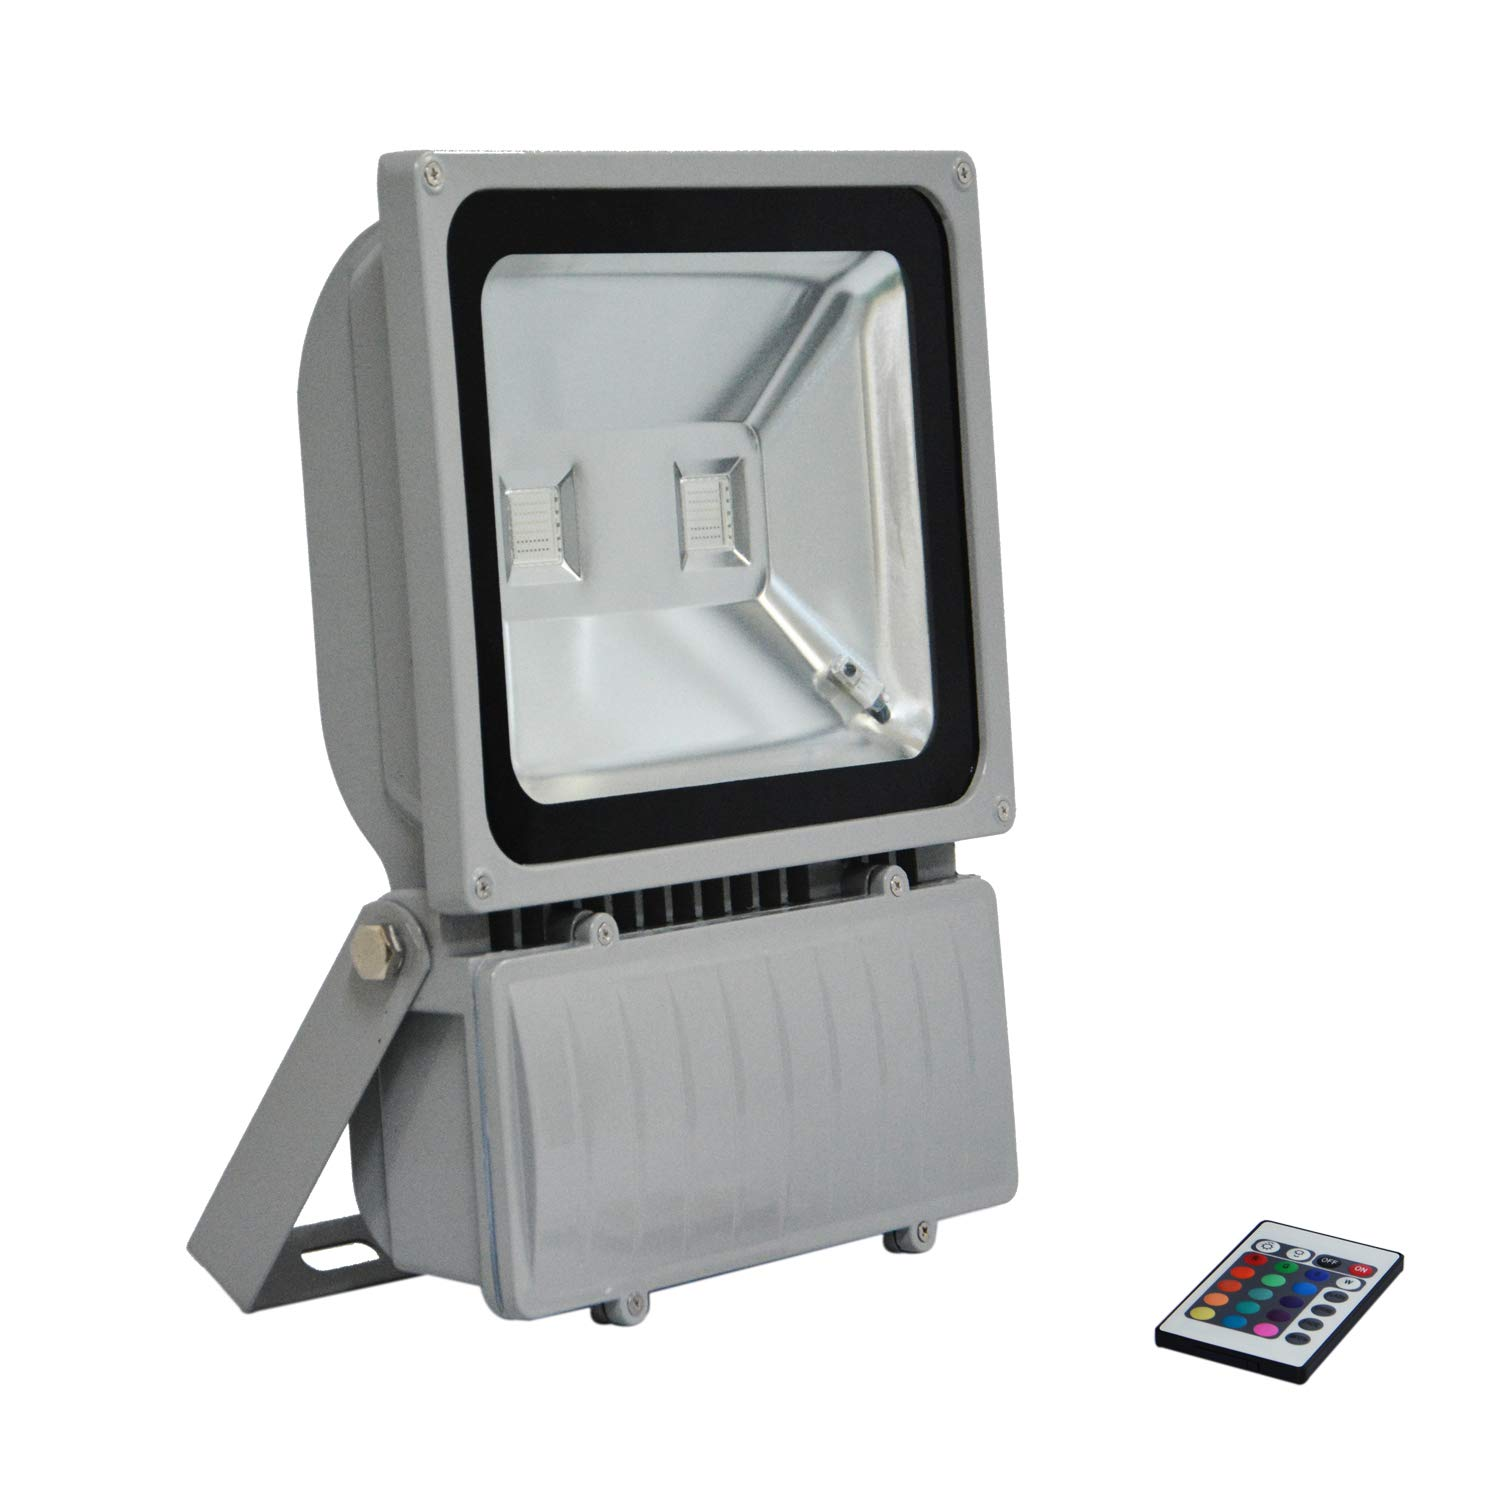 RSN LED RGB Flood Light Color Change AC85-265V with IR Remote Controller 100W High Power IP65 Waterproof 2 Years Warranty